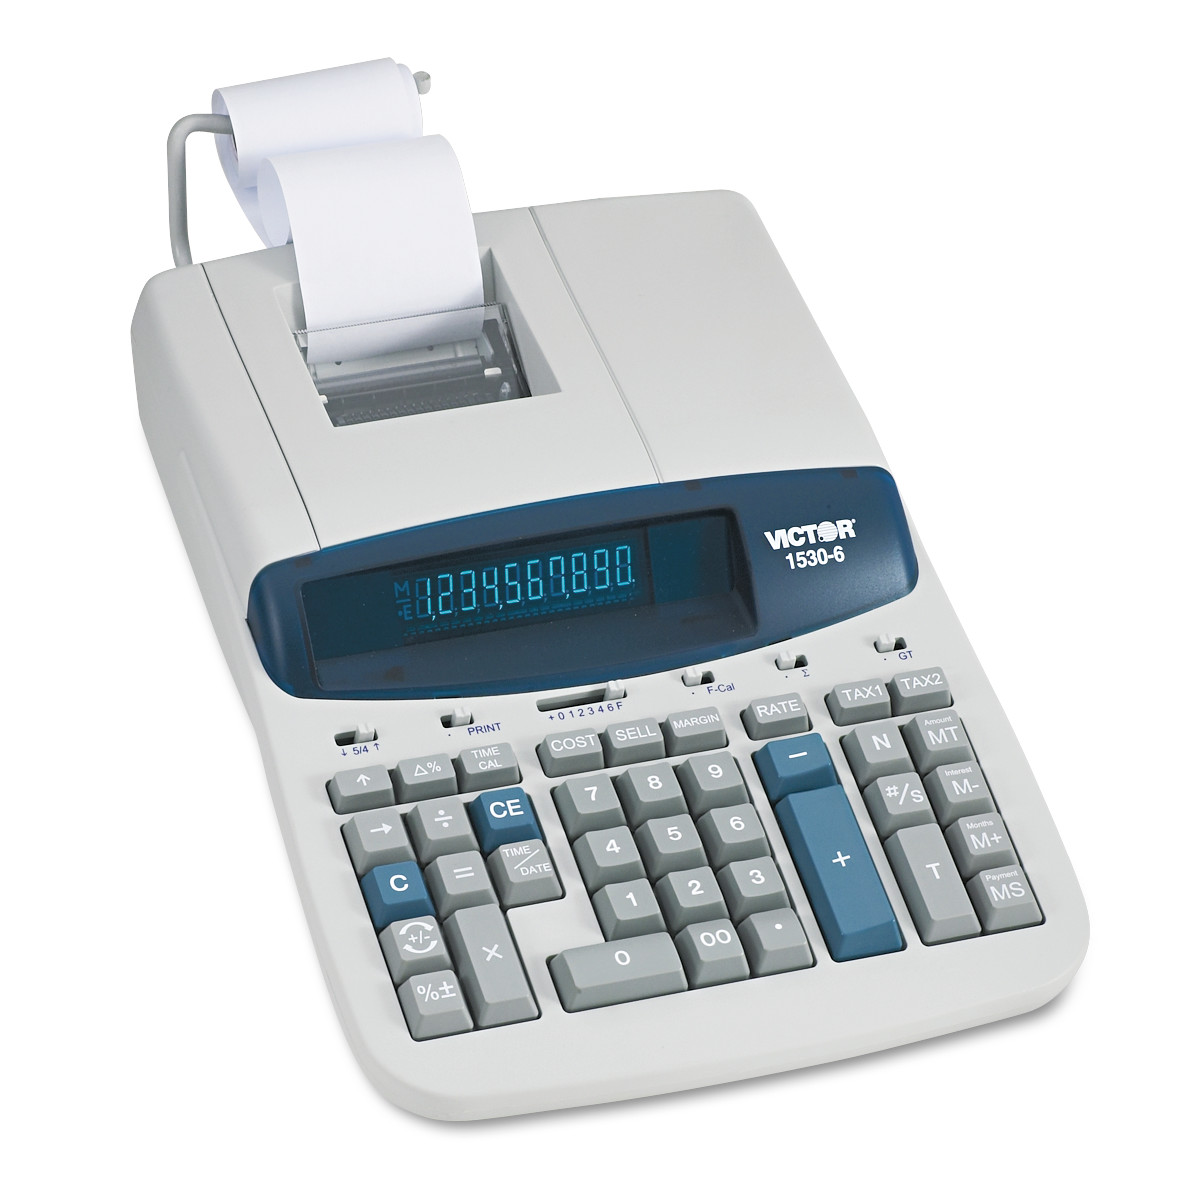 Victor 1530-6 Two-Color Ribbon Printing Calculator, Black/Red Print, 5 Lines/Sec